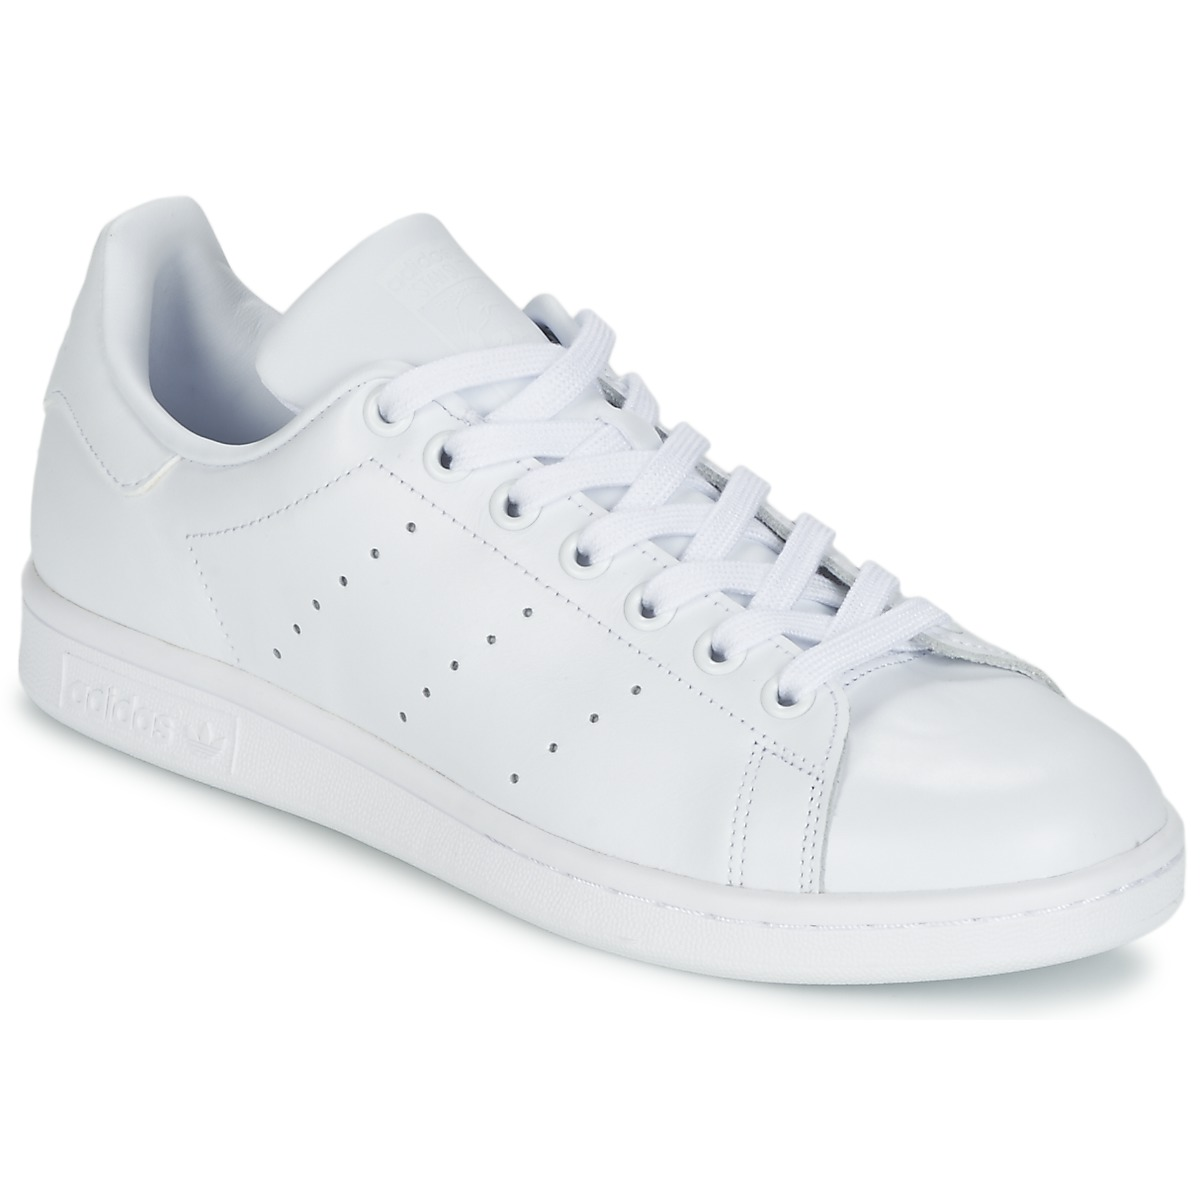 hot sale online 78054 60821 high-quality adidas Originals STAN SMITH White Shoes Low top trainers